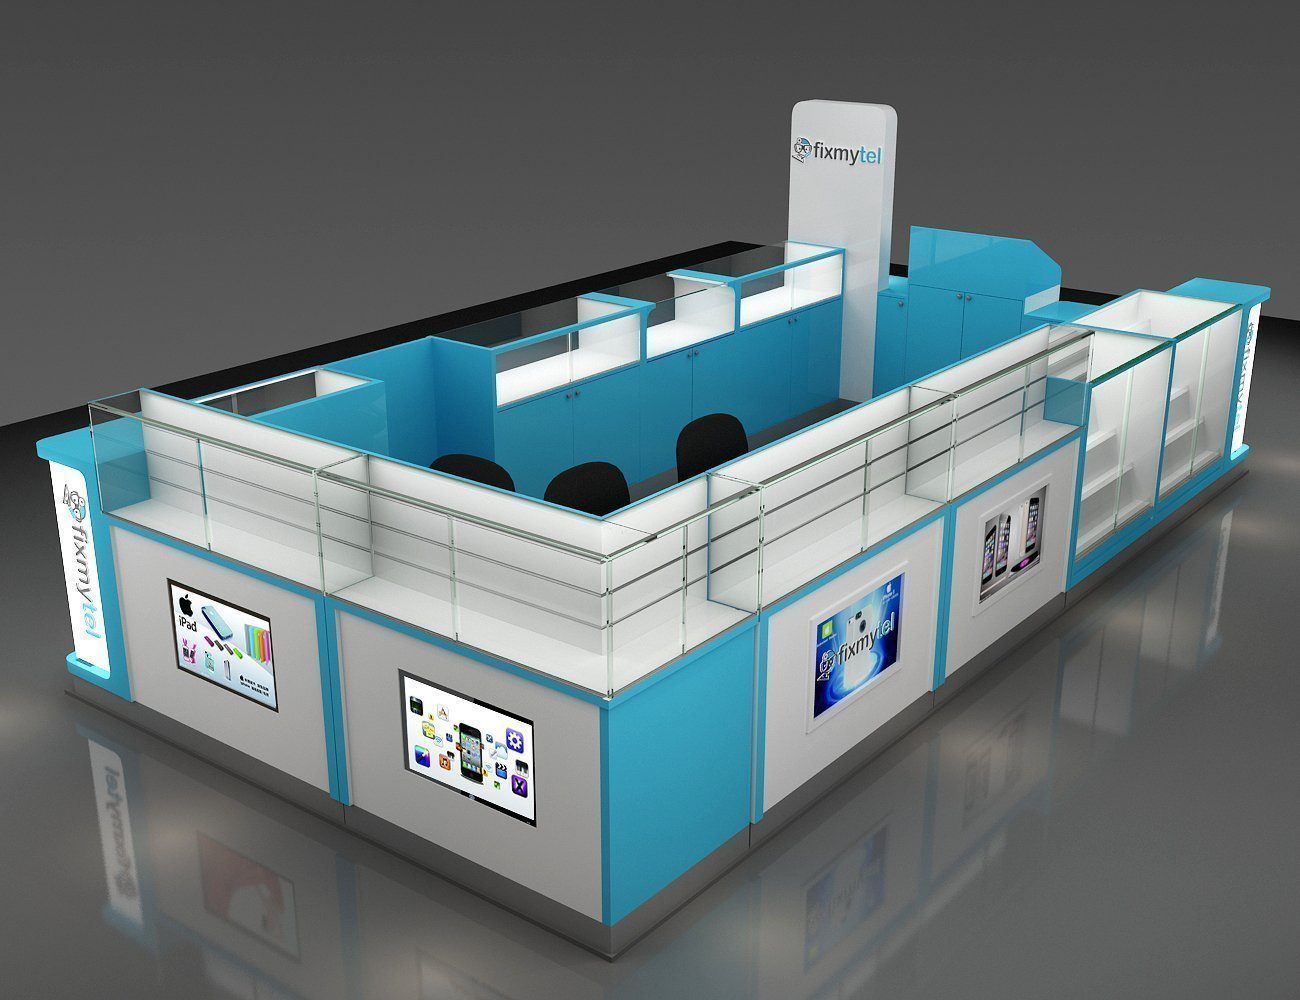 Cell phone fix kiosk design in mall with affordable price for sale